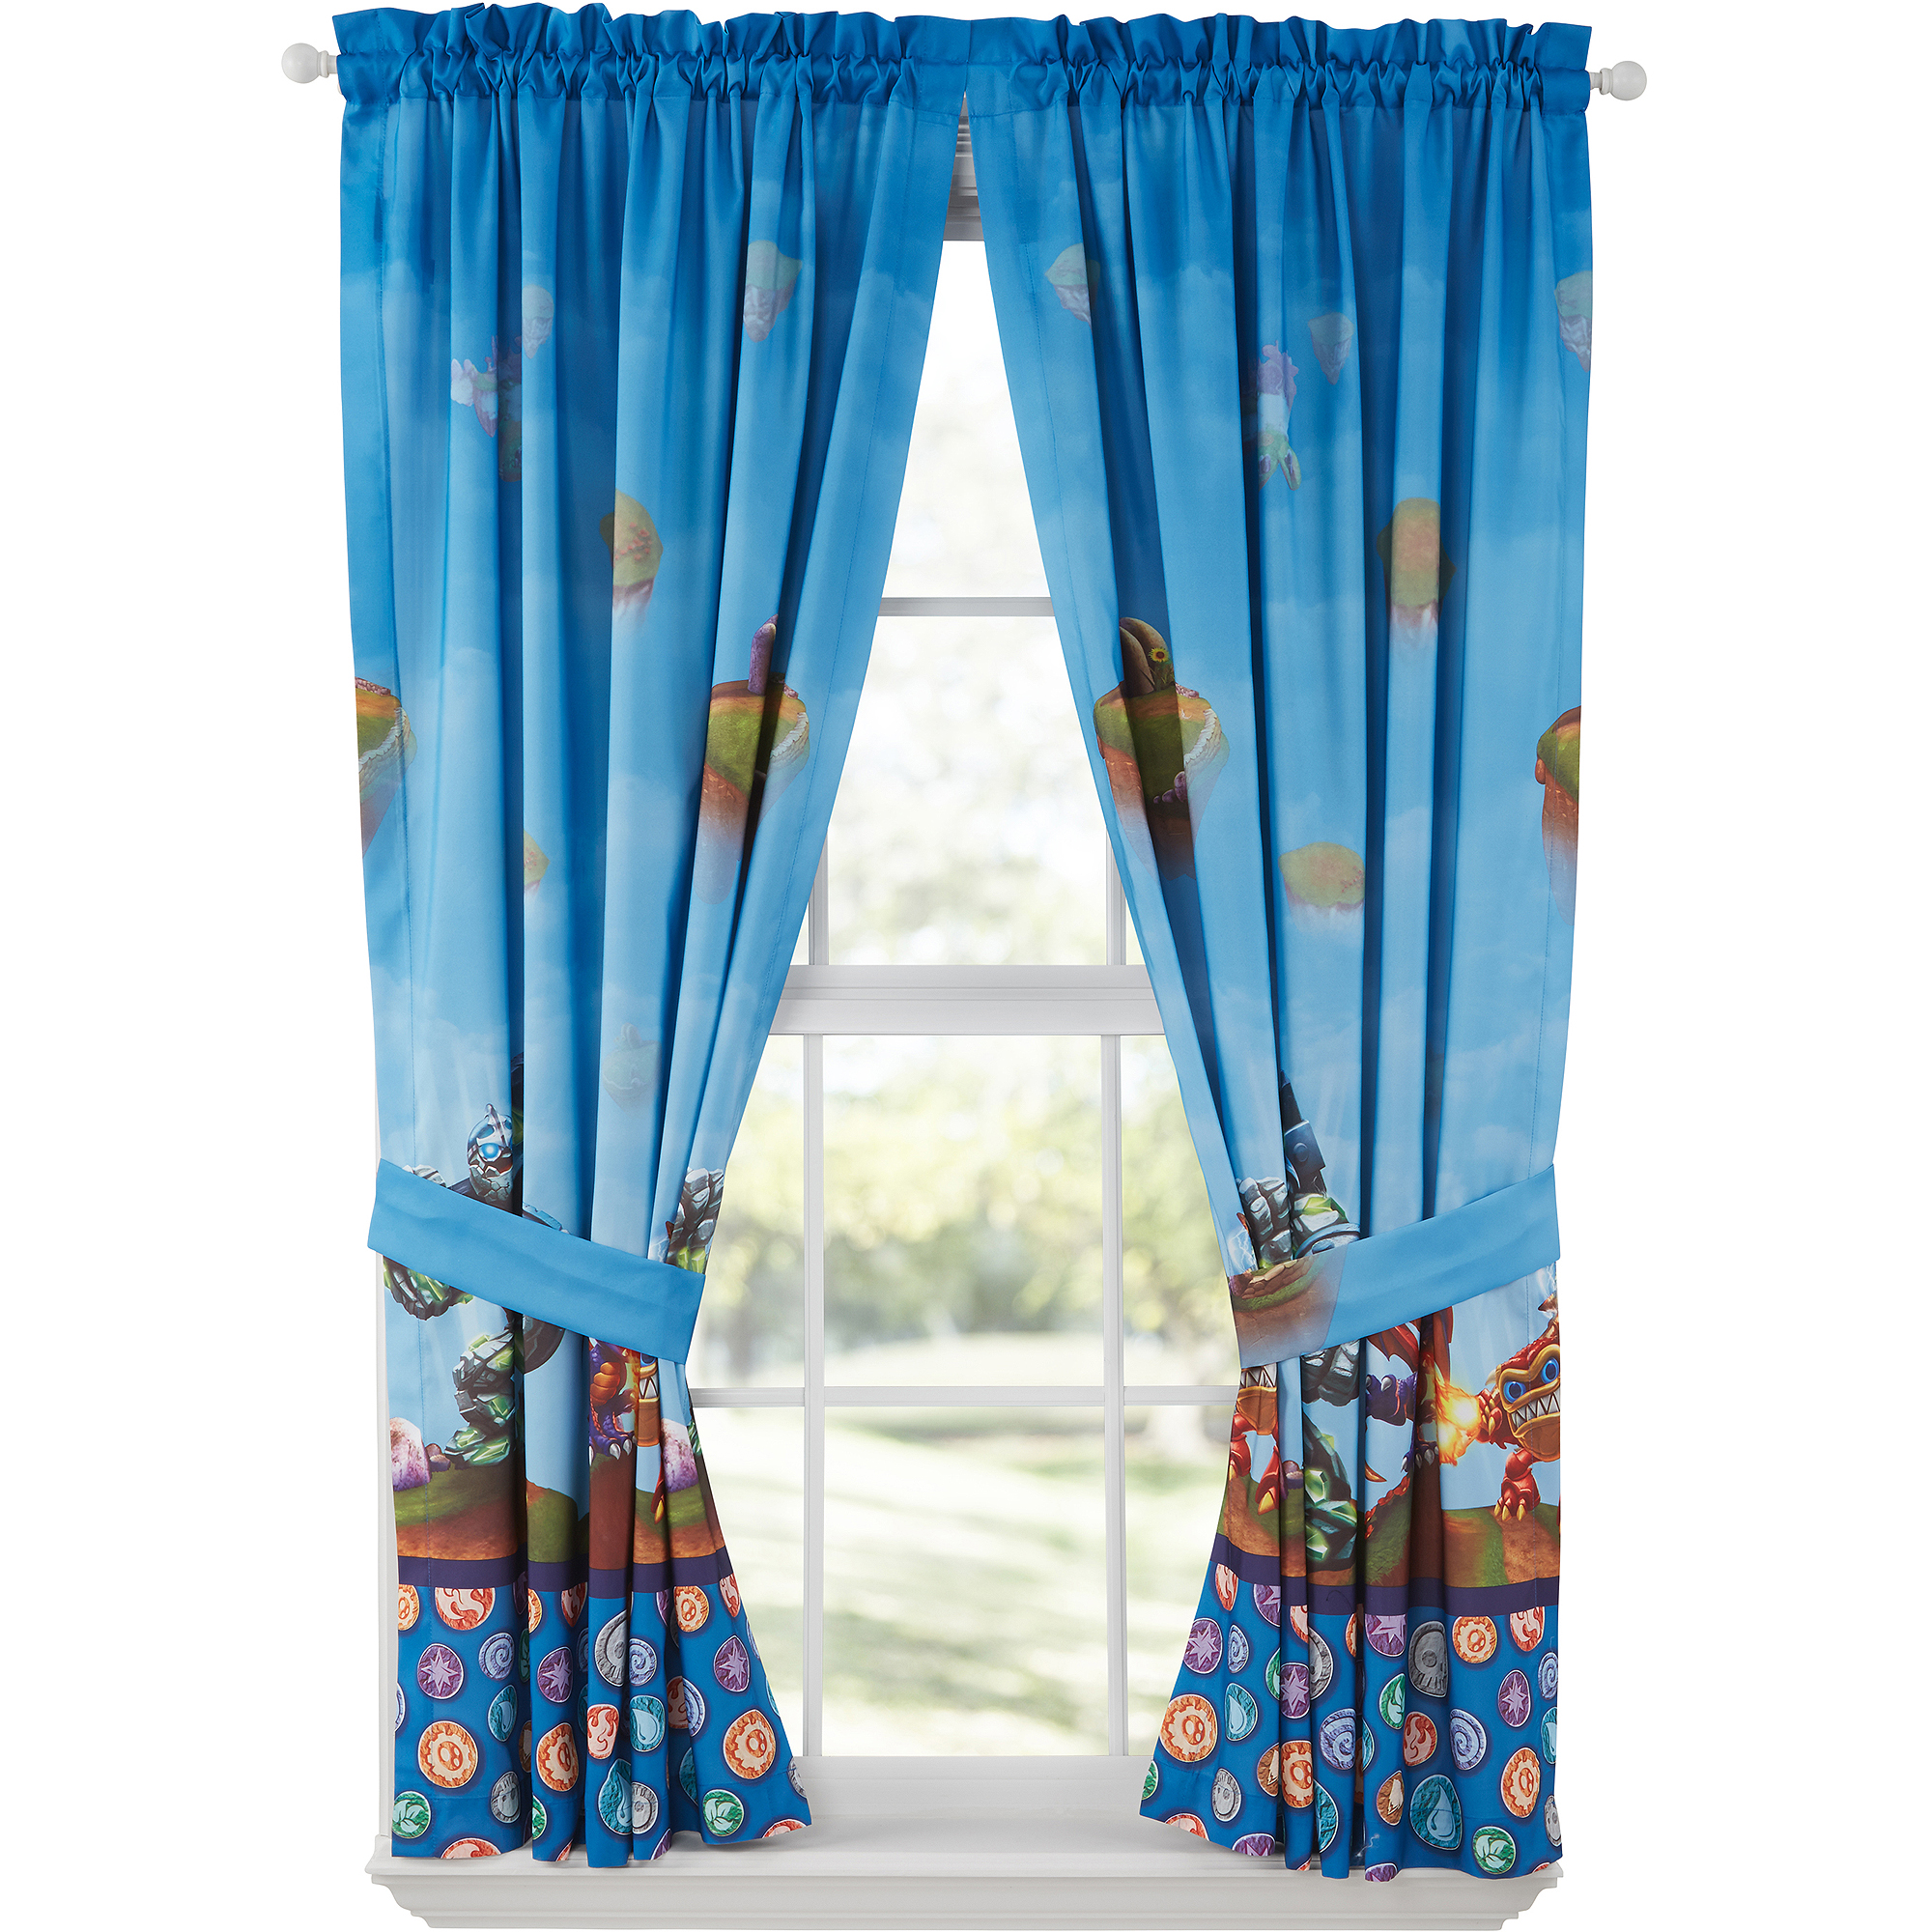 Skylanders Drapes, Set of 2